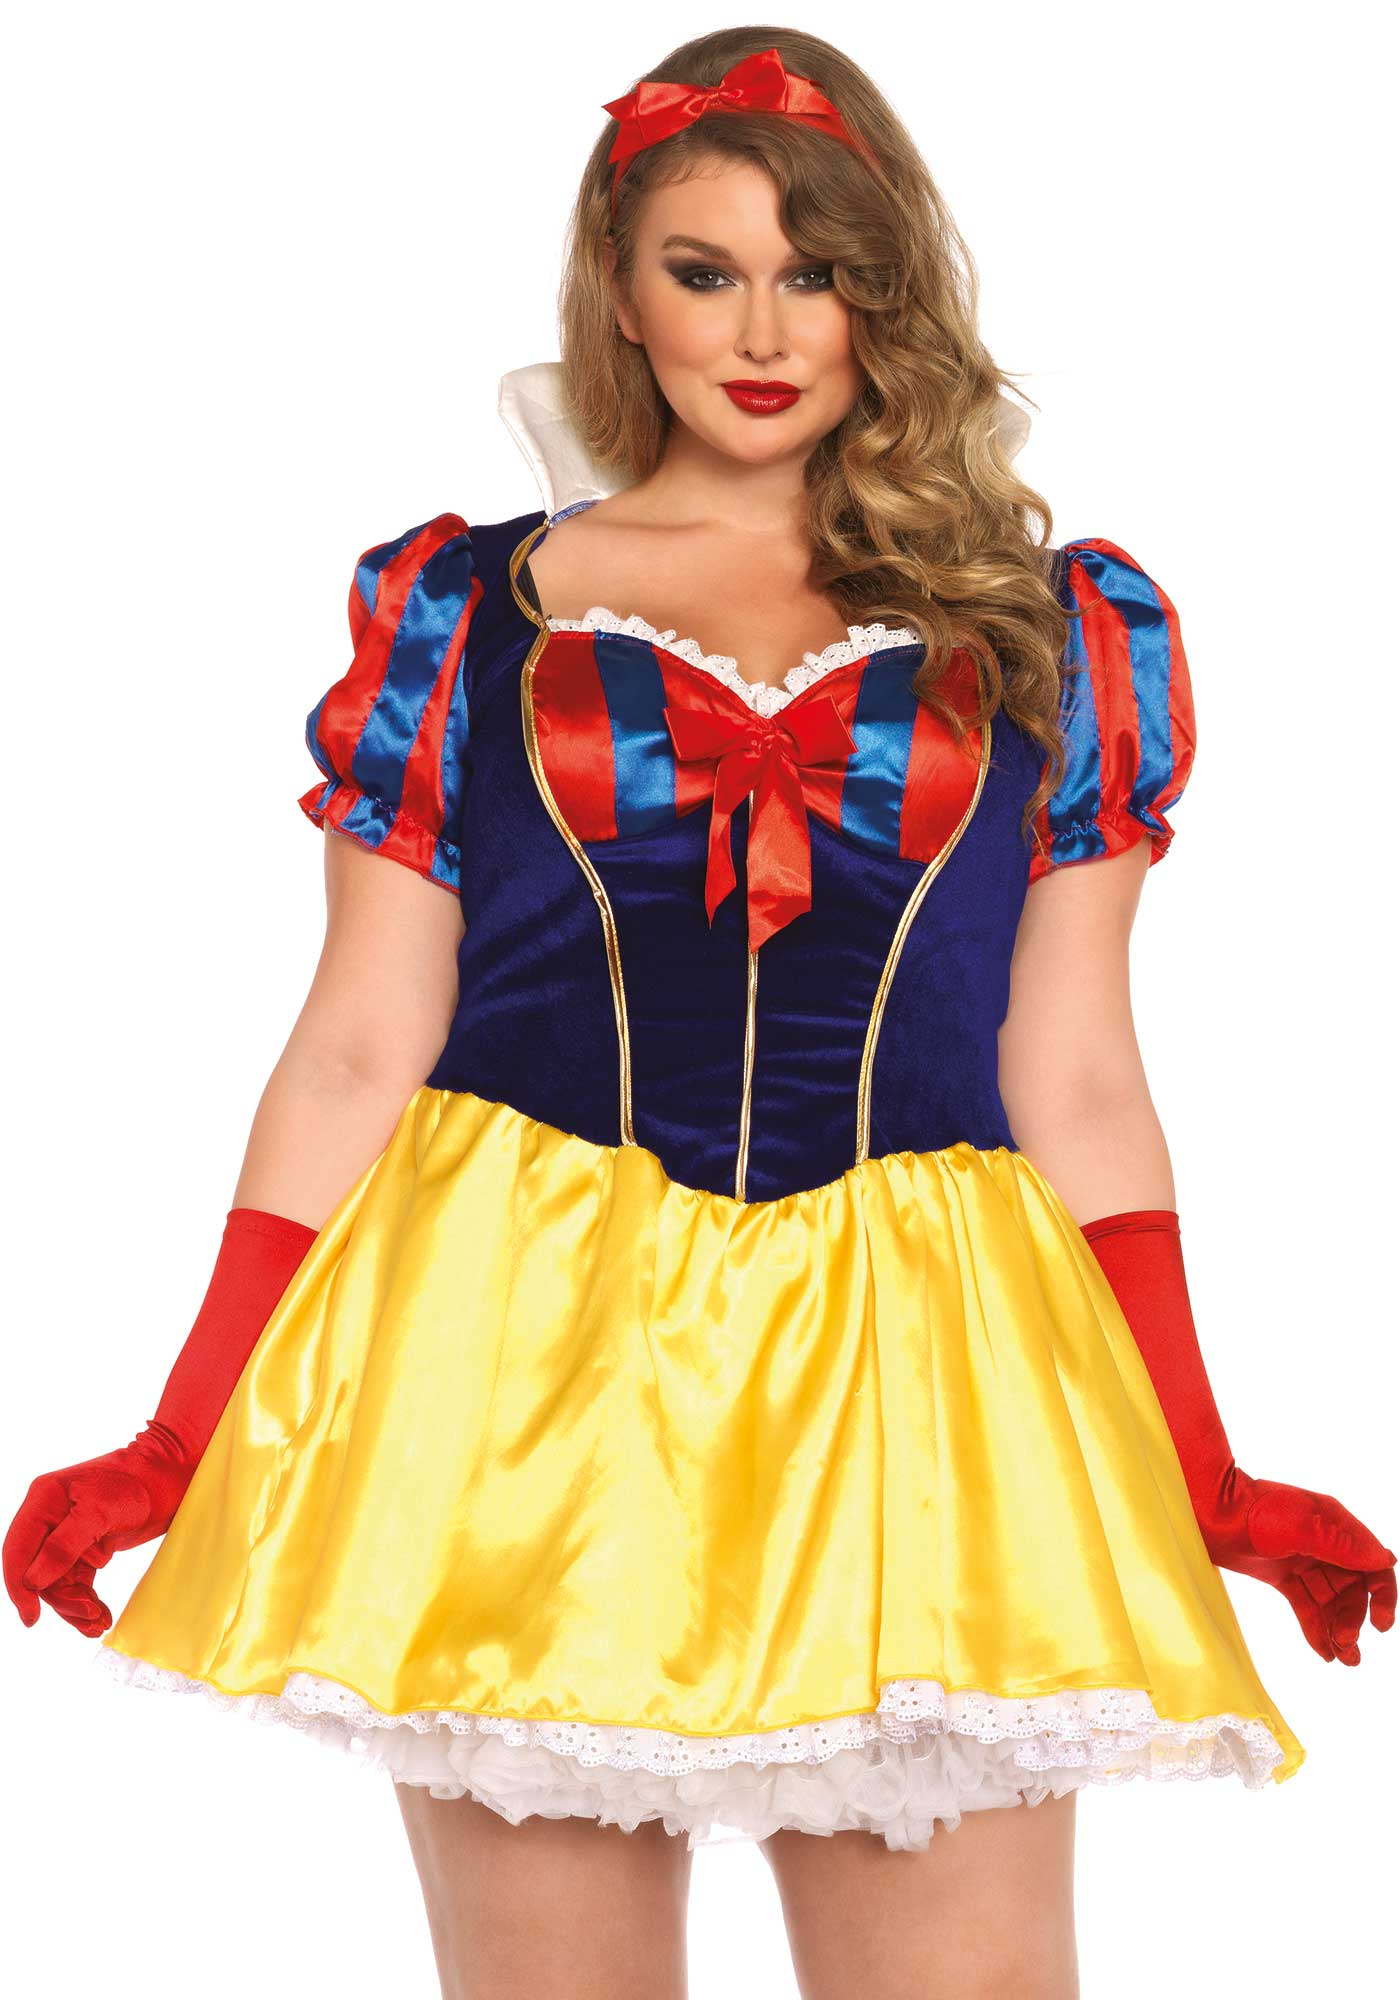 Don't eat any apple, one might be poisoned. This 2PC fairy-tale snow white costume includes a dres with a velvet bodice and bow headband. Please take note that the petticoat, socks and gloves are not included. The length of size 1XL-2XL, measured from the shoulder is 94cm / 37inch. The model has a length of 185 cm/ 73 inch and is wearing a size 1XL-2XL.